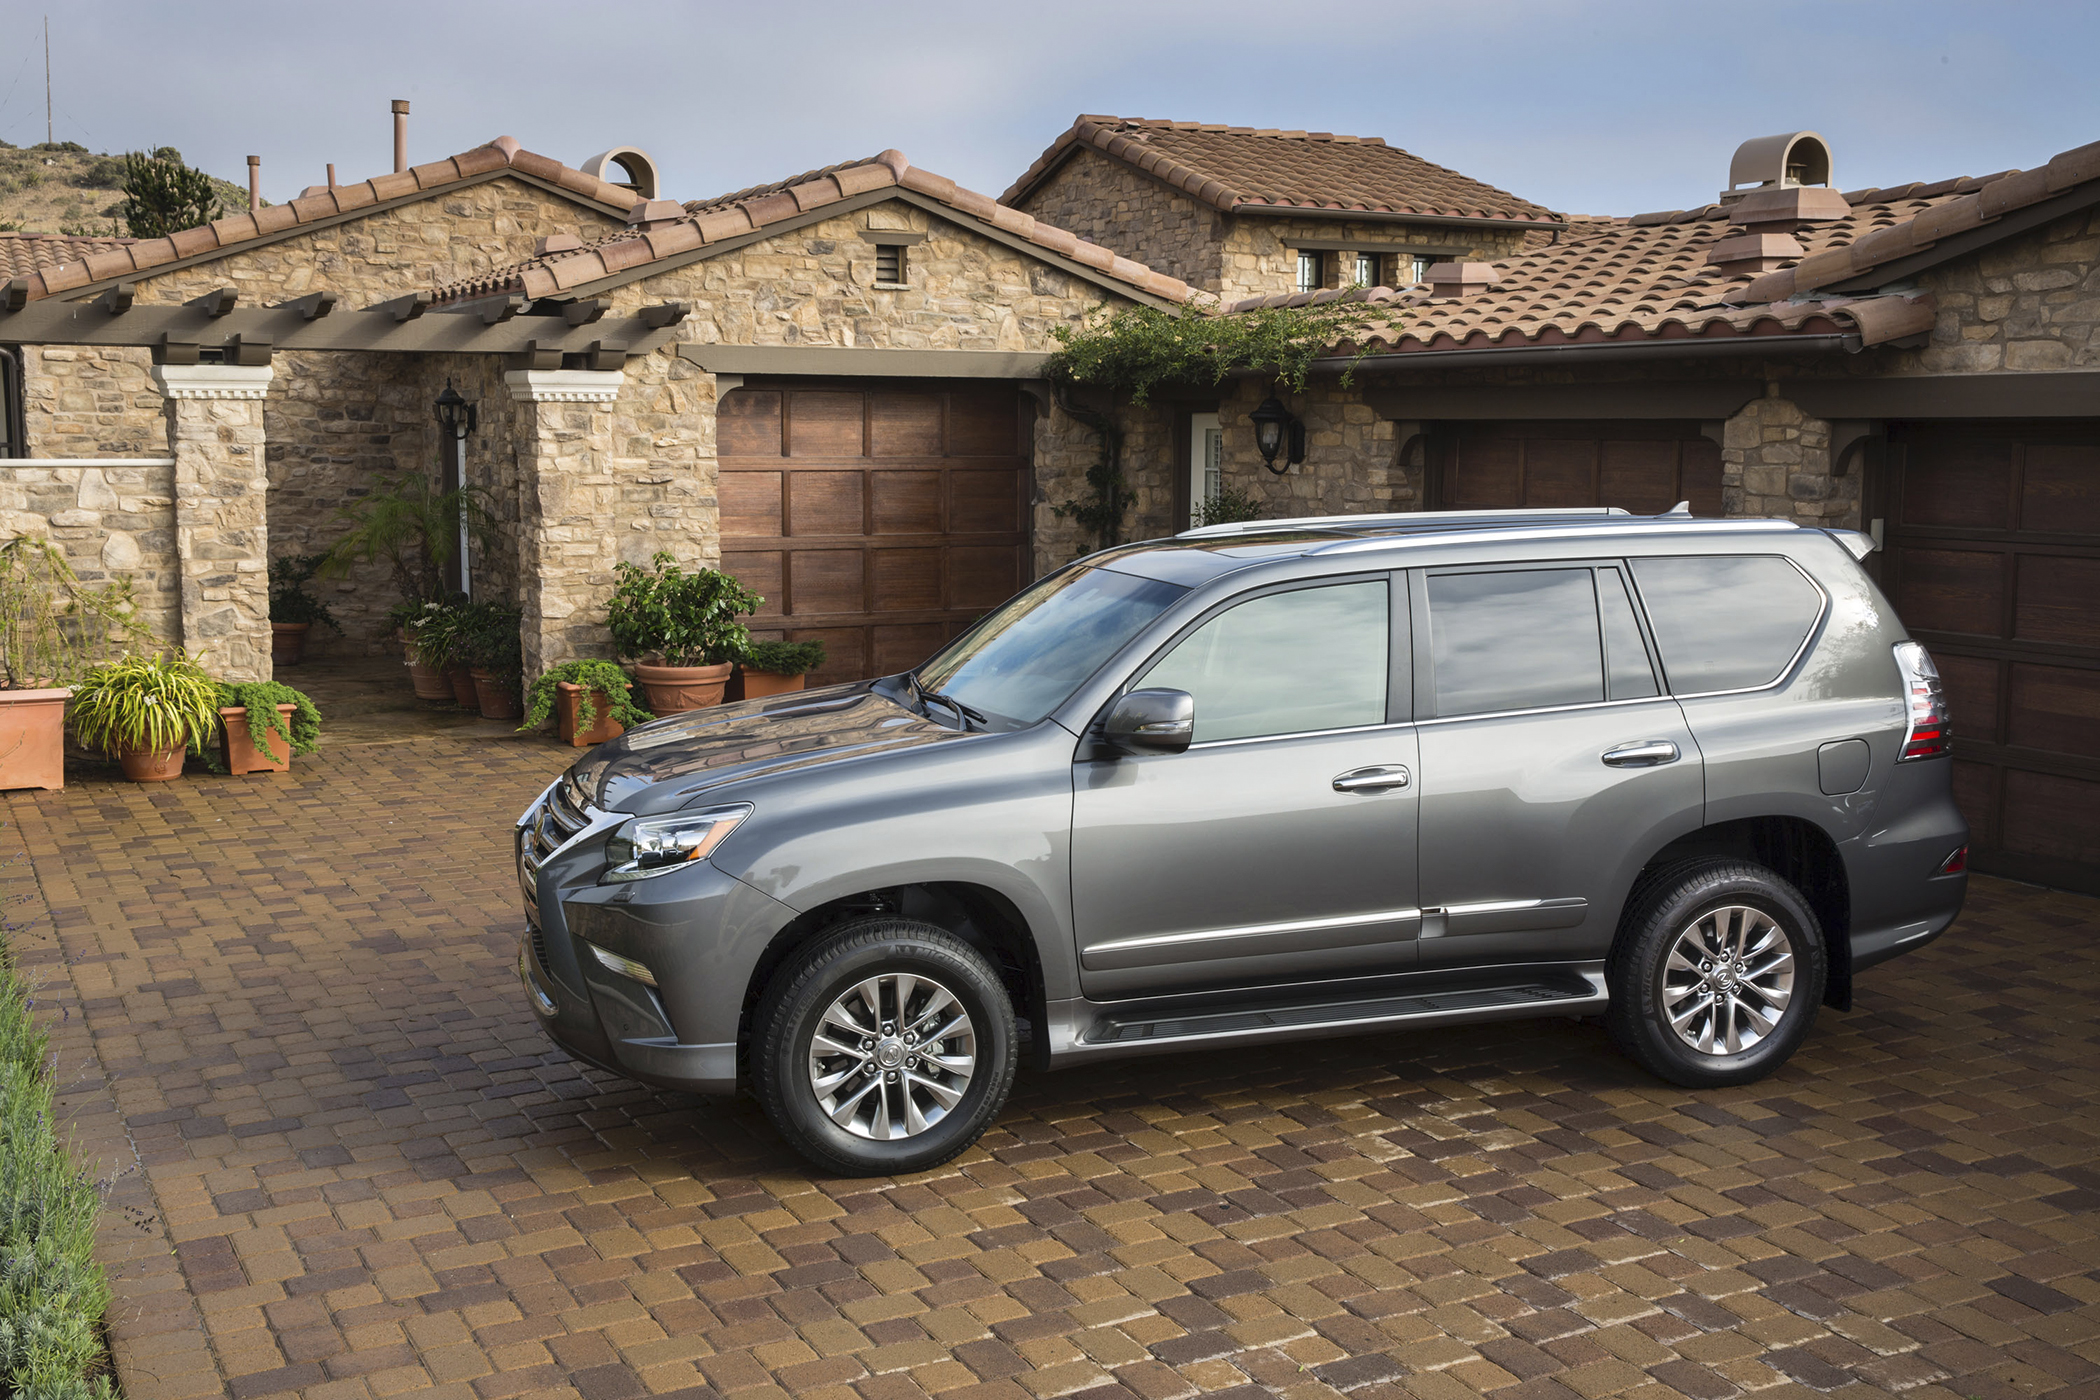 Best SUV:TheLexus GX 460, with a true ownership cost of $60,439, loses 43% of its value over five years—10% more than its non-luxury counterpart.